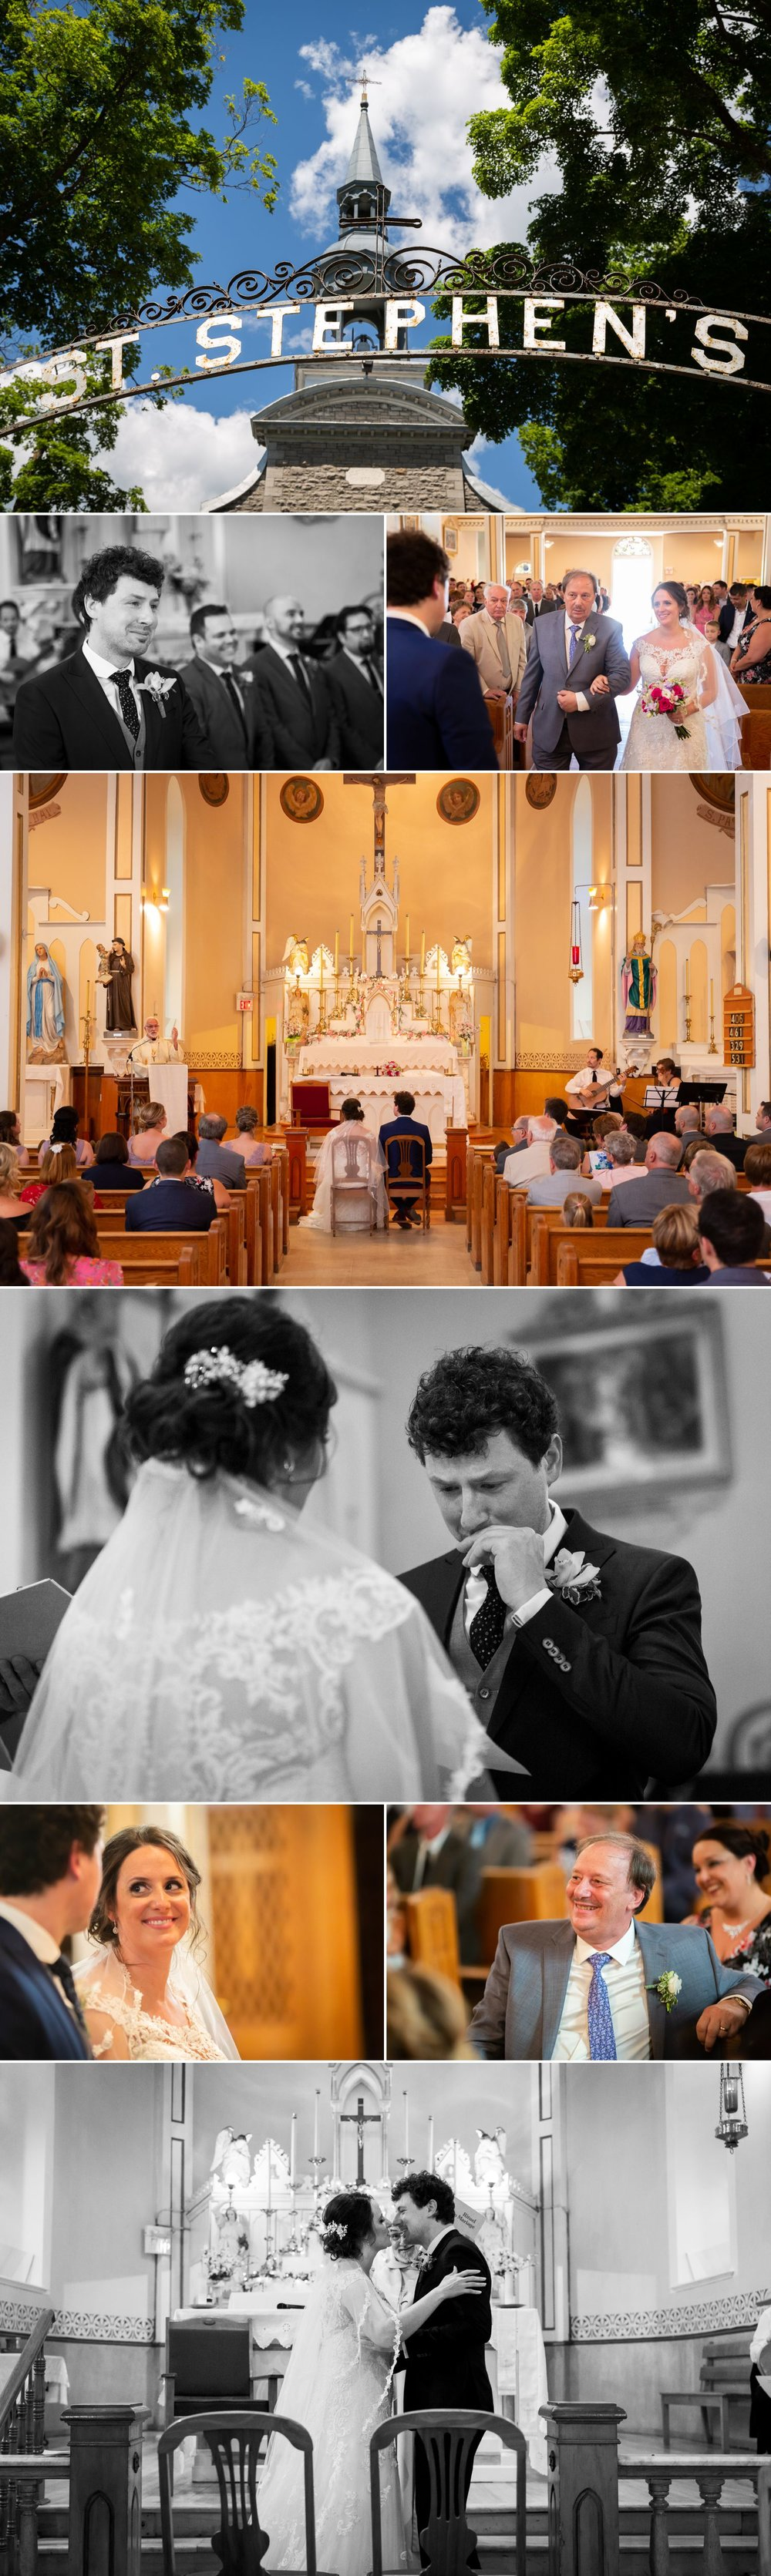 A wedding ceremony taking place at Saint Stephen's Parish in Chelsea, Quebec